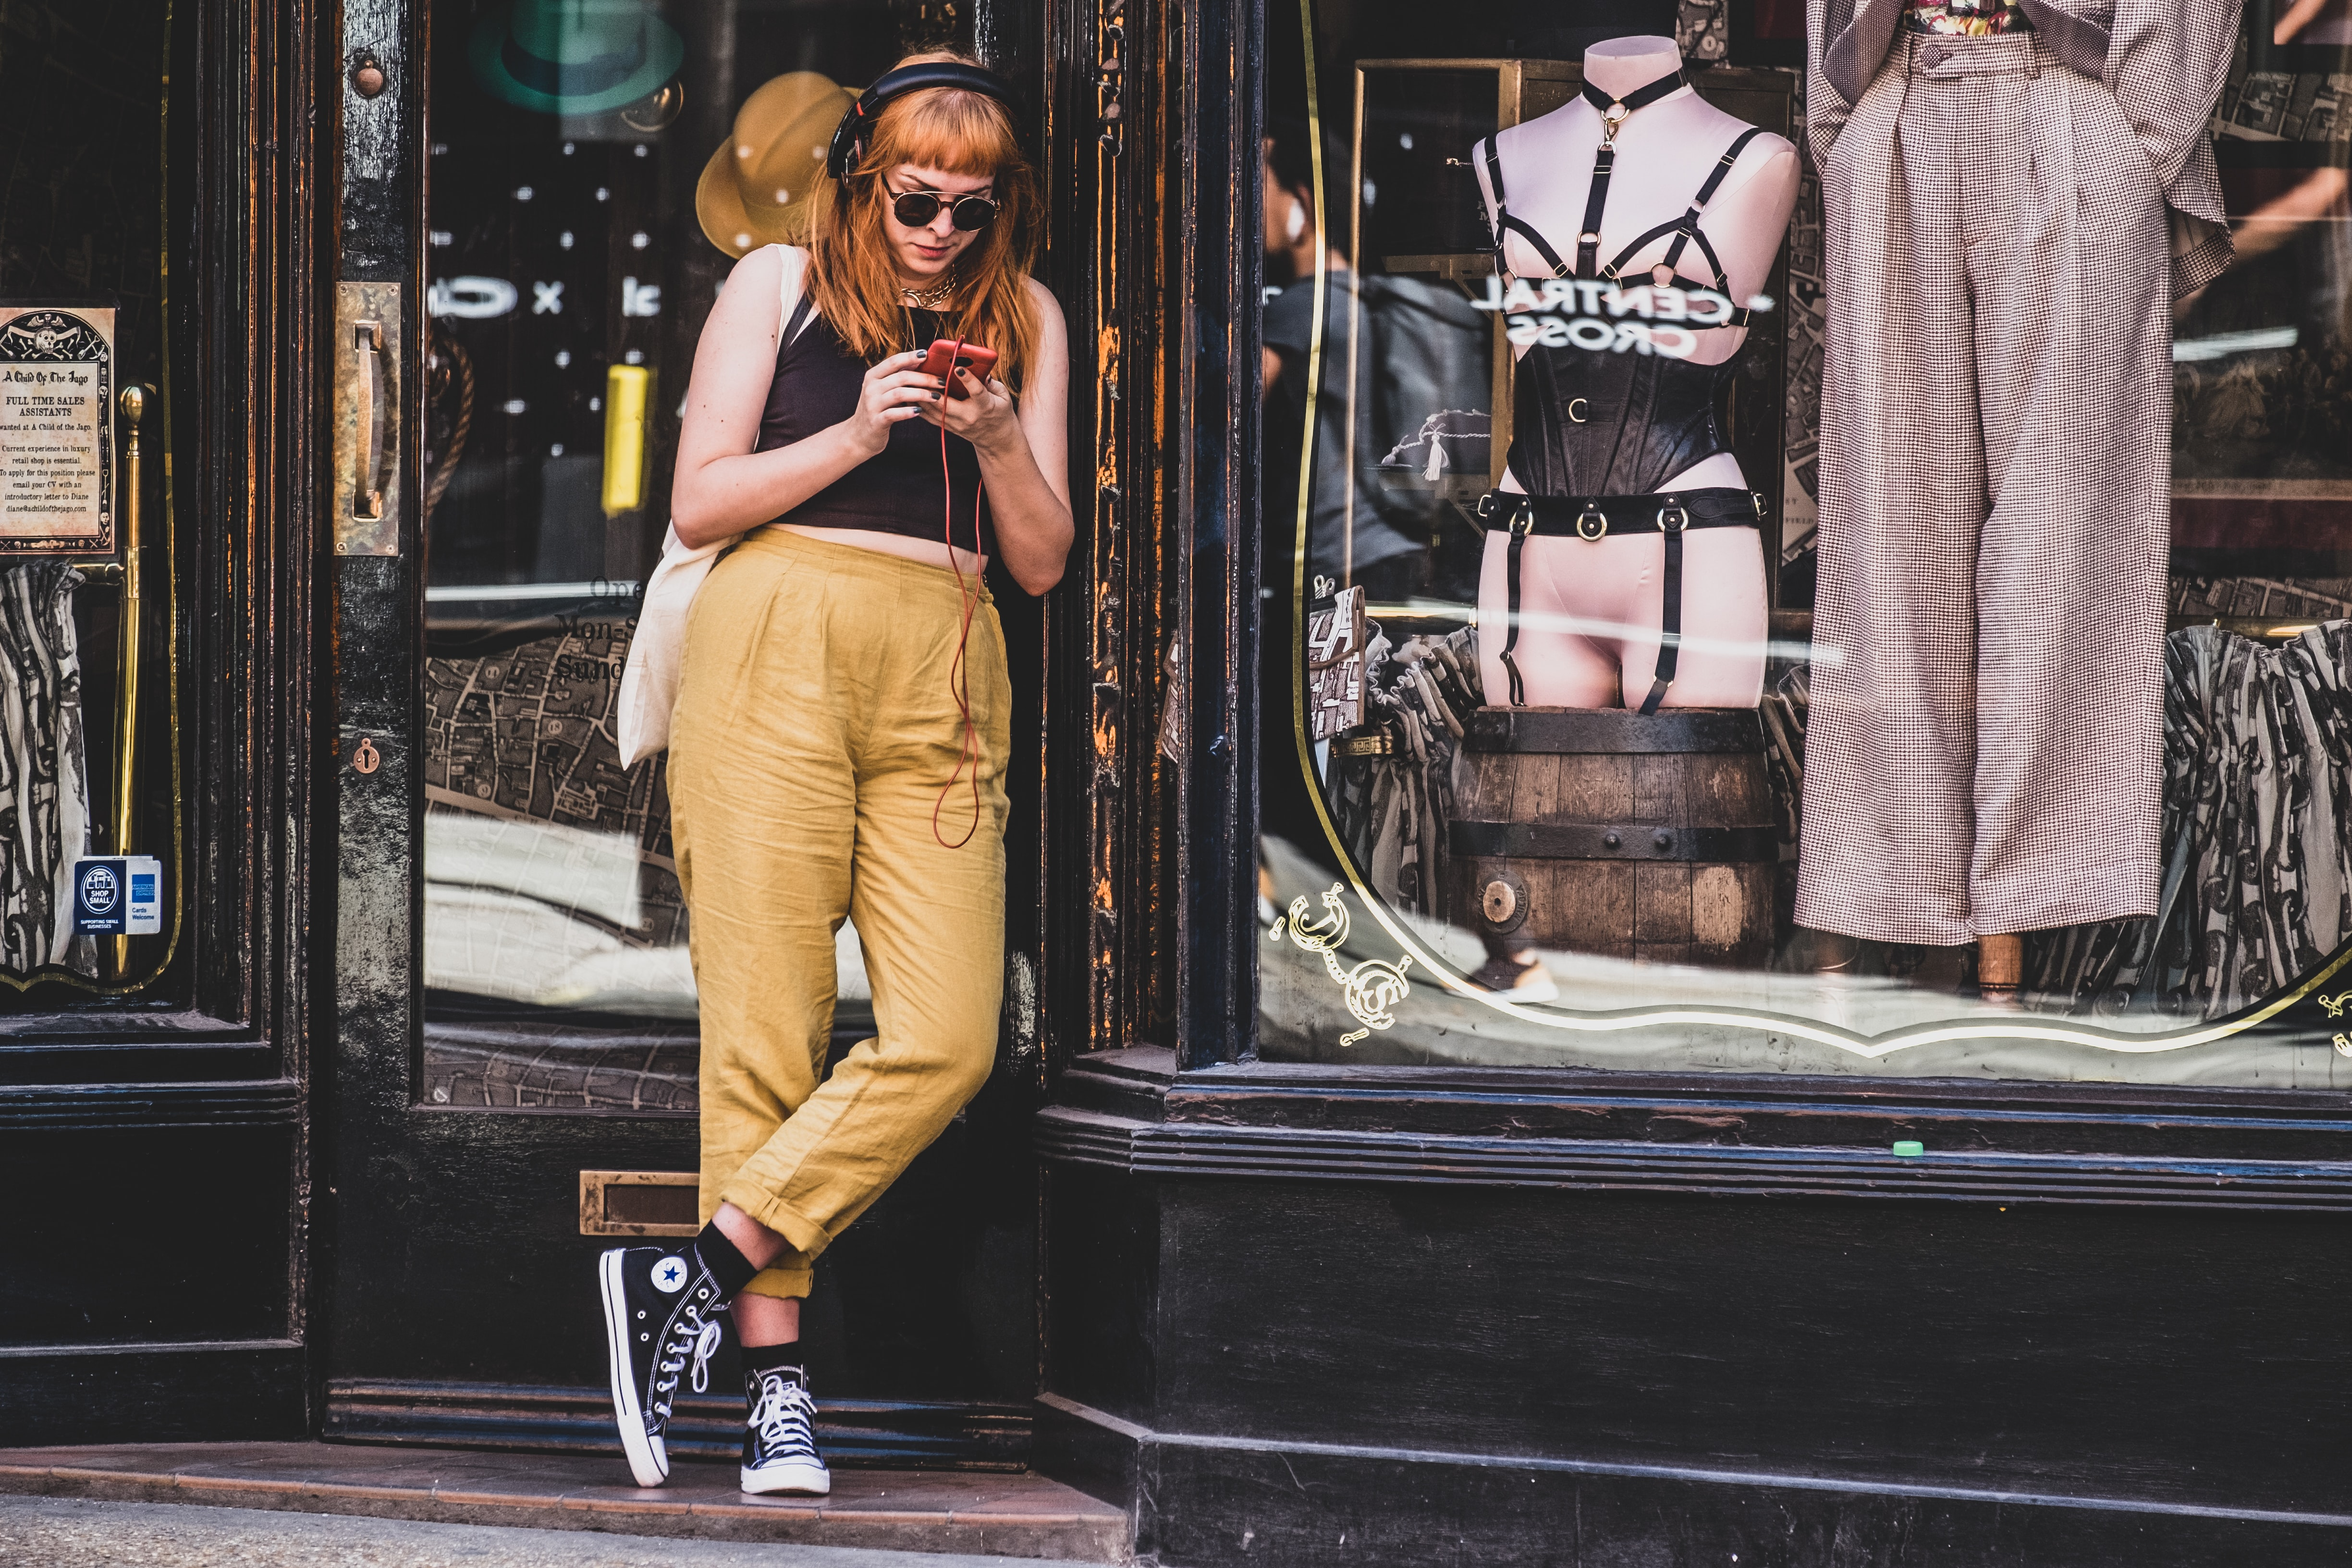 woman standing in front of store while using a smartphone